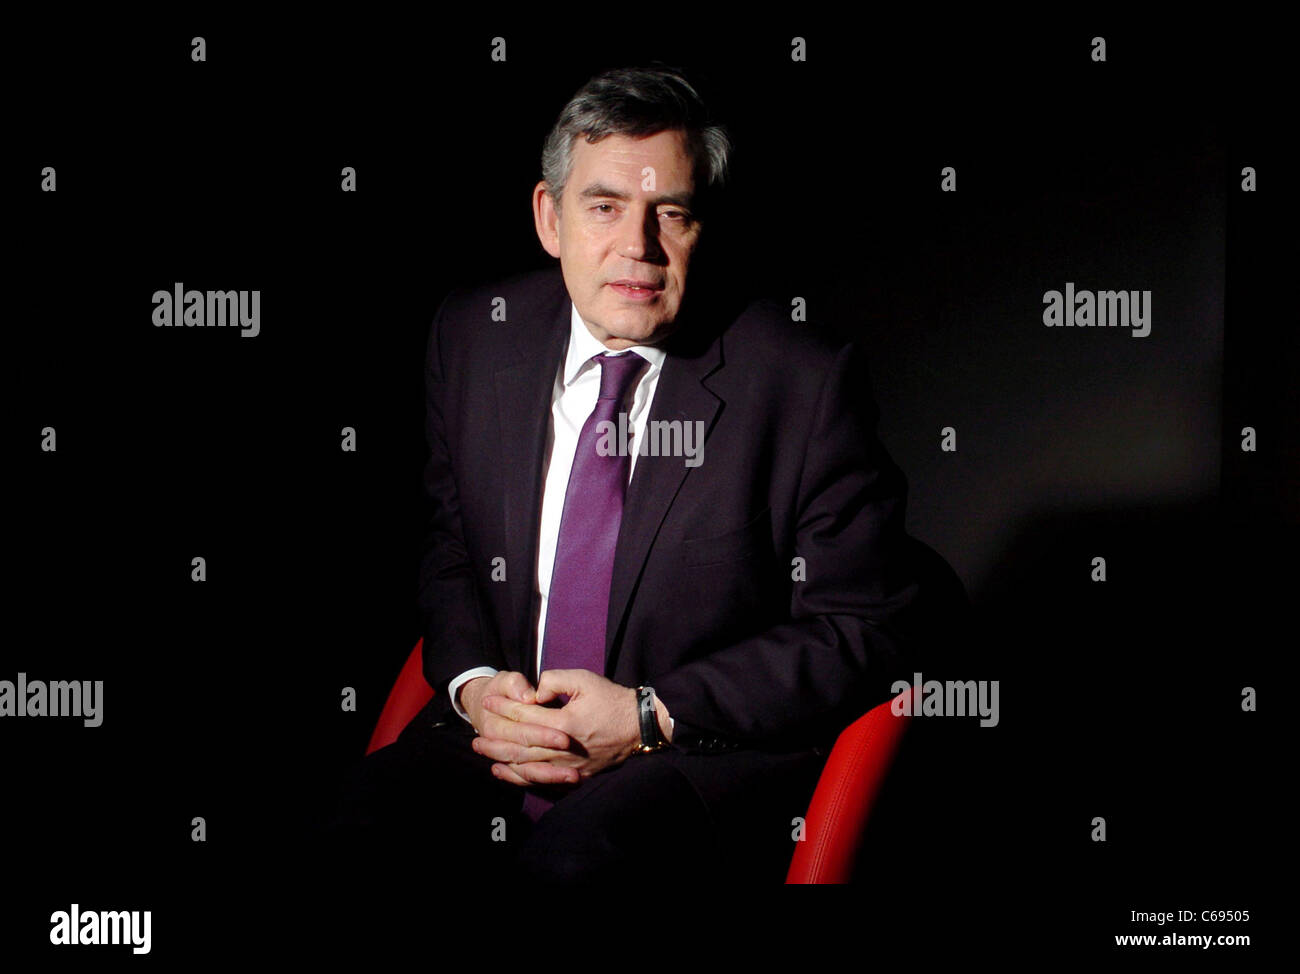 The former Labour Leader, Prime Minister and Chancellor of the Exchequer Gordon Brown. - Stock Image